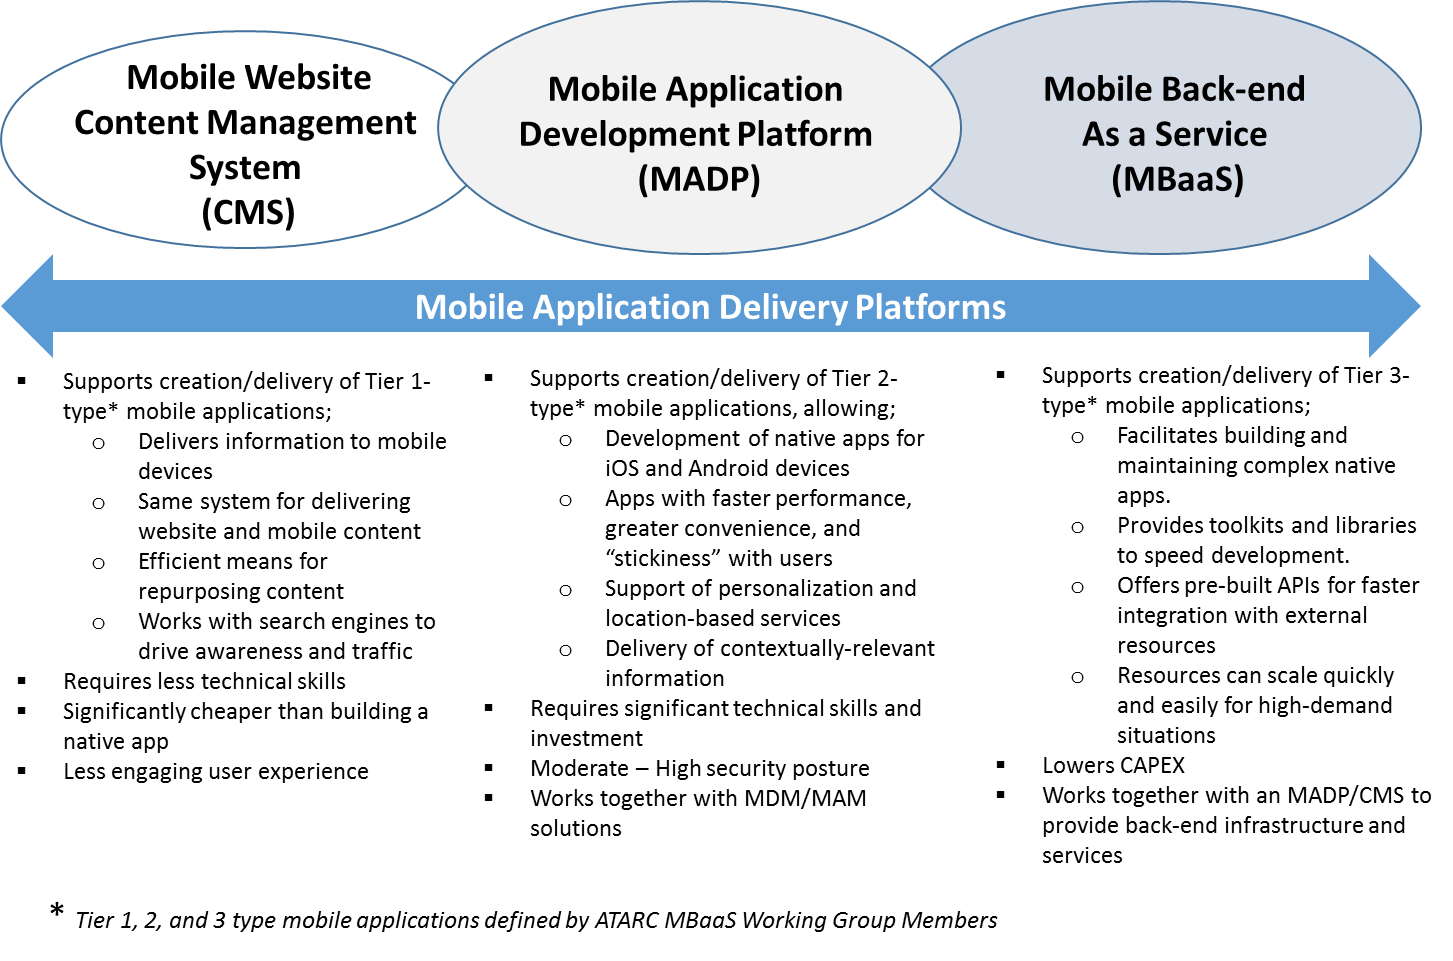 Mobile Backend as a Service (MBaaS) | Acquisition Gateway